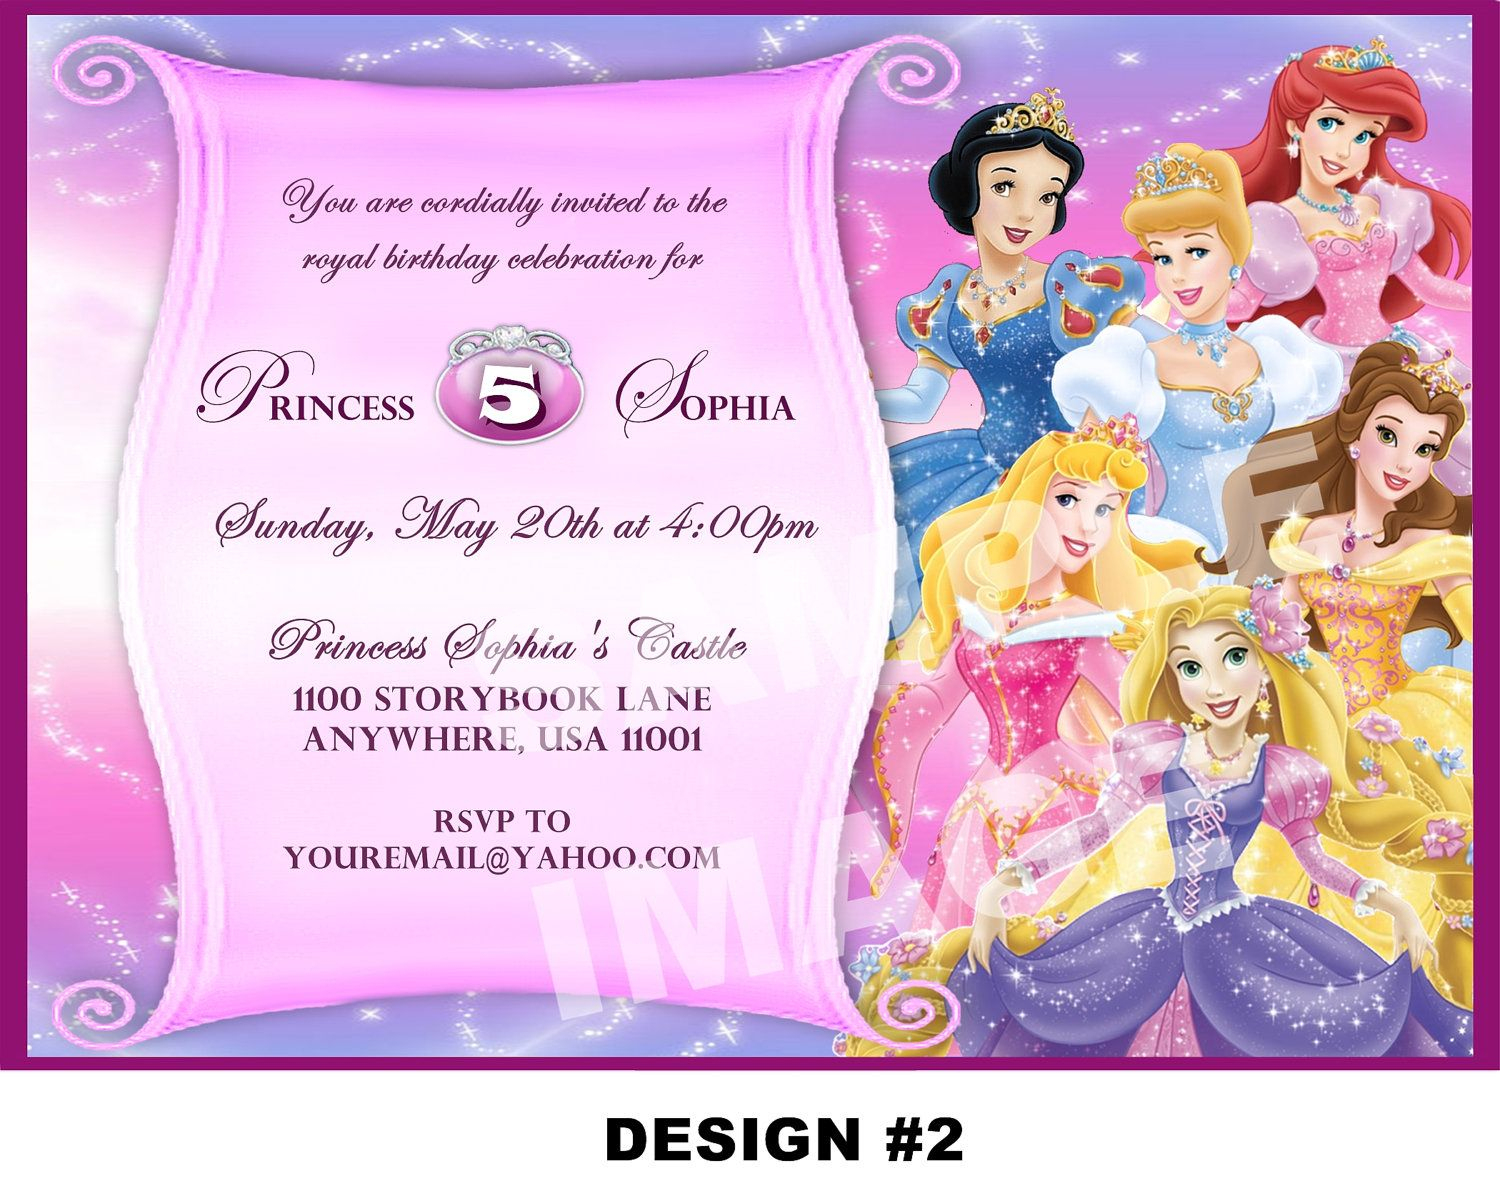 Free Printable Princess Party Invitations | Disney Princess - Disney Princess Free Printable Invitations